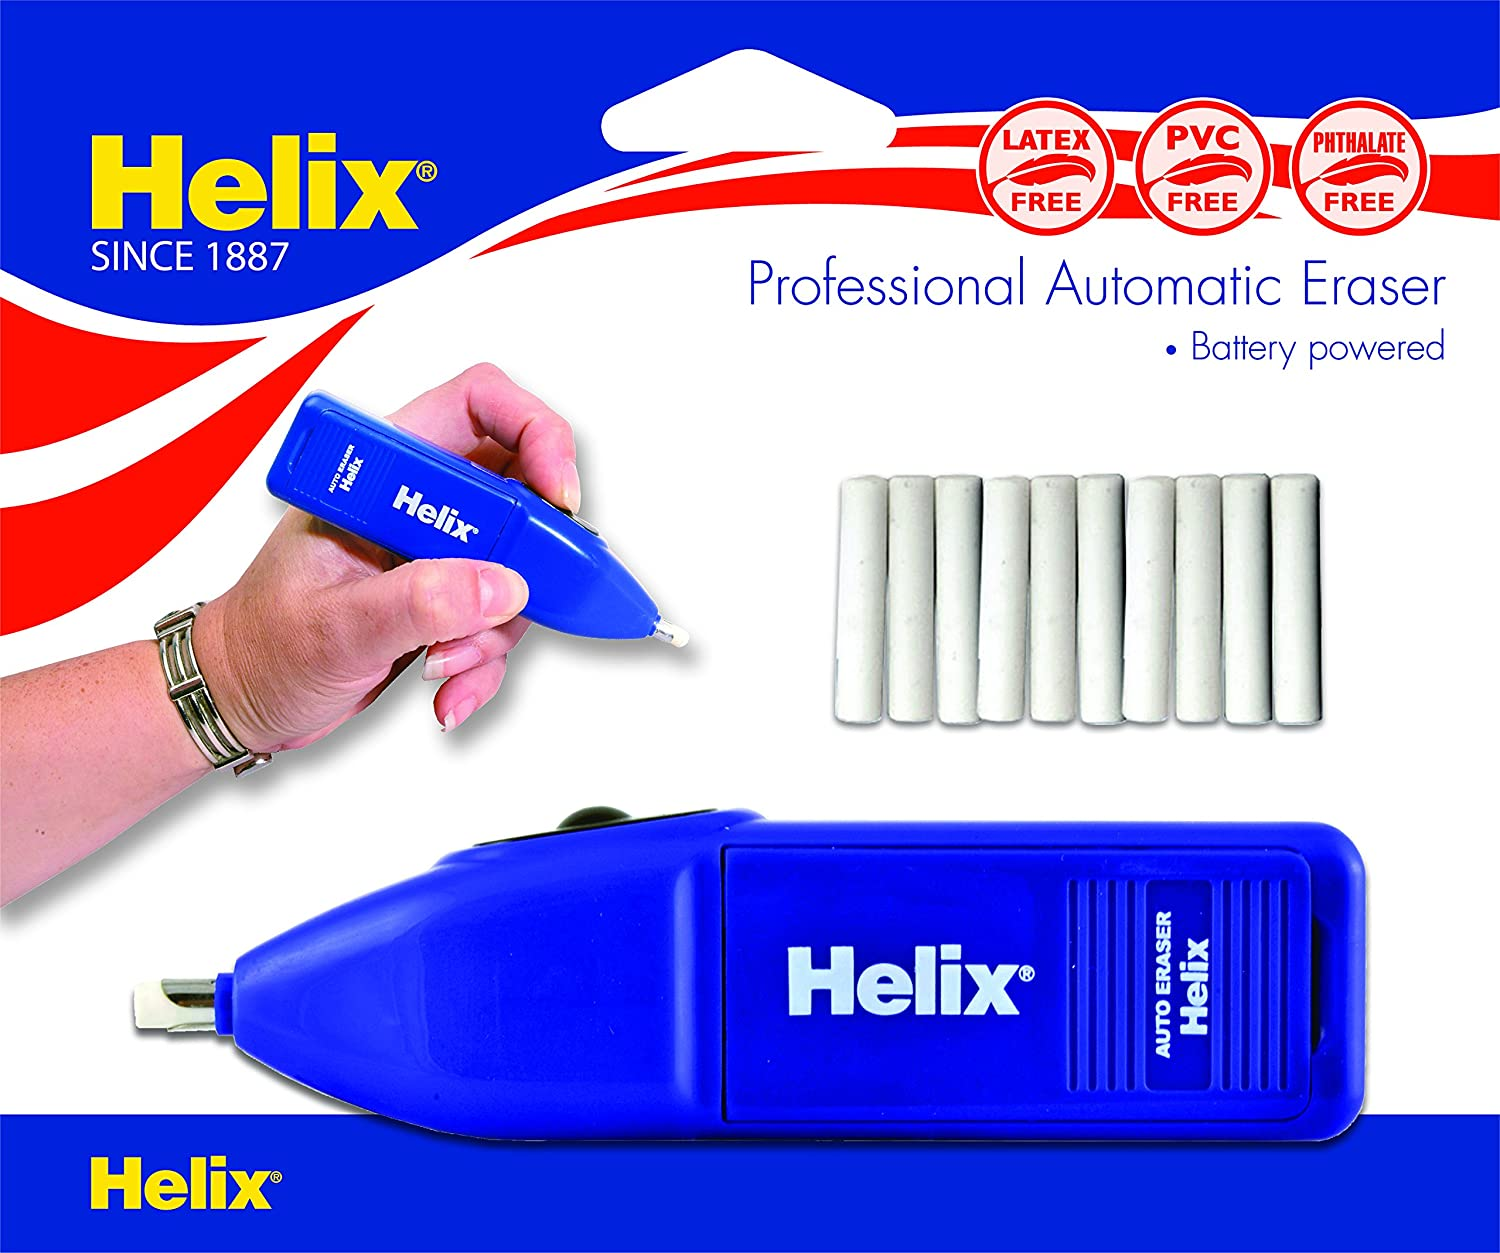 Helix Auto Eraser Pack of 2